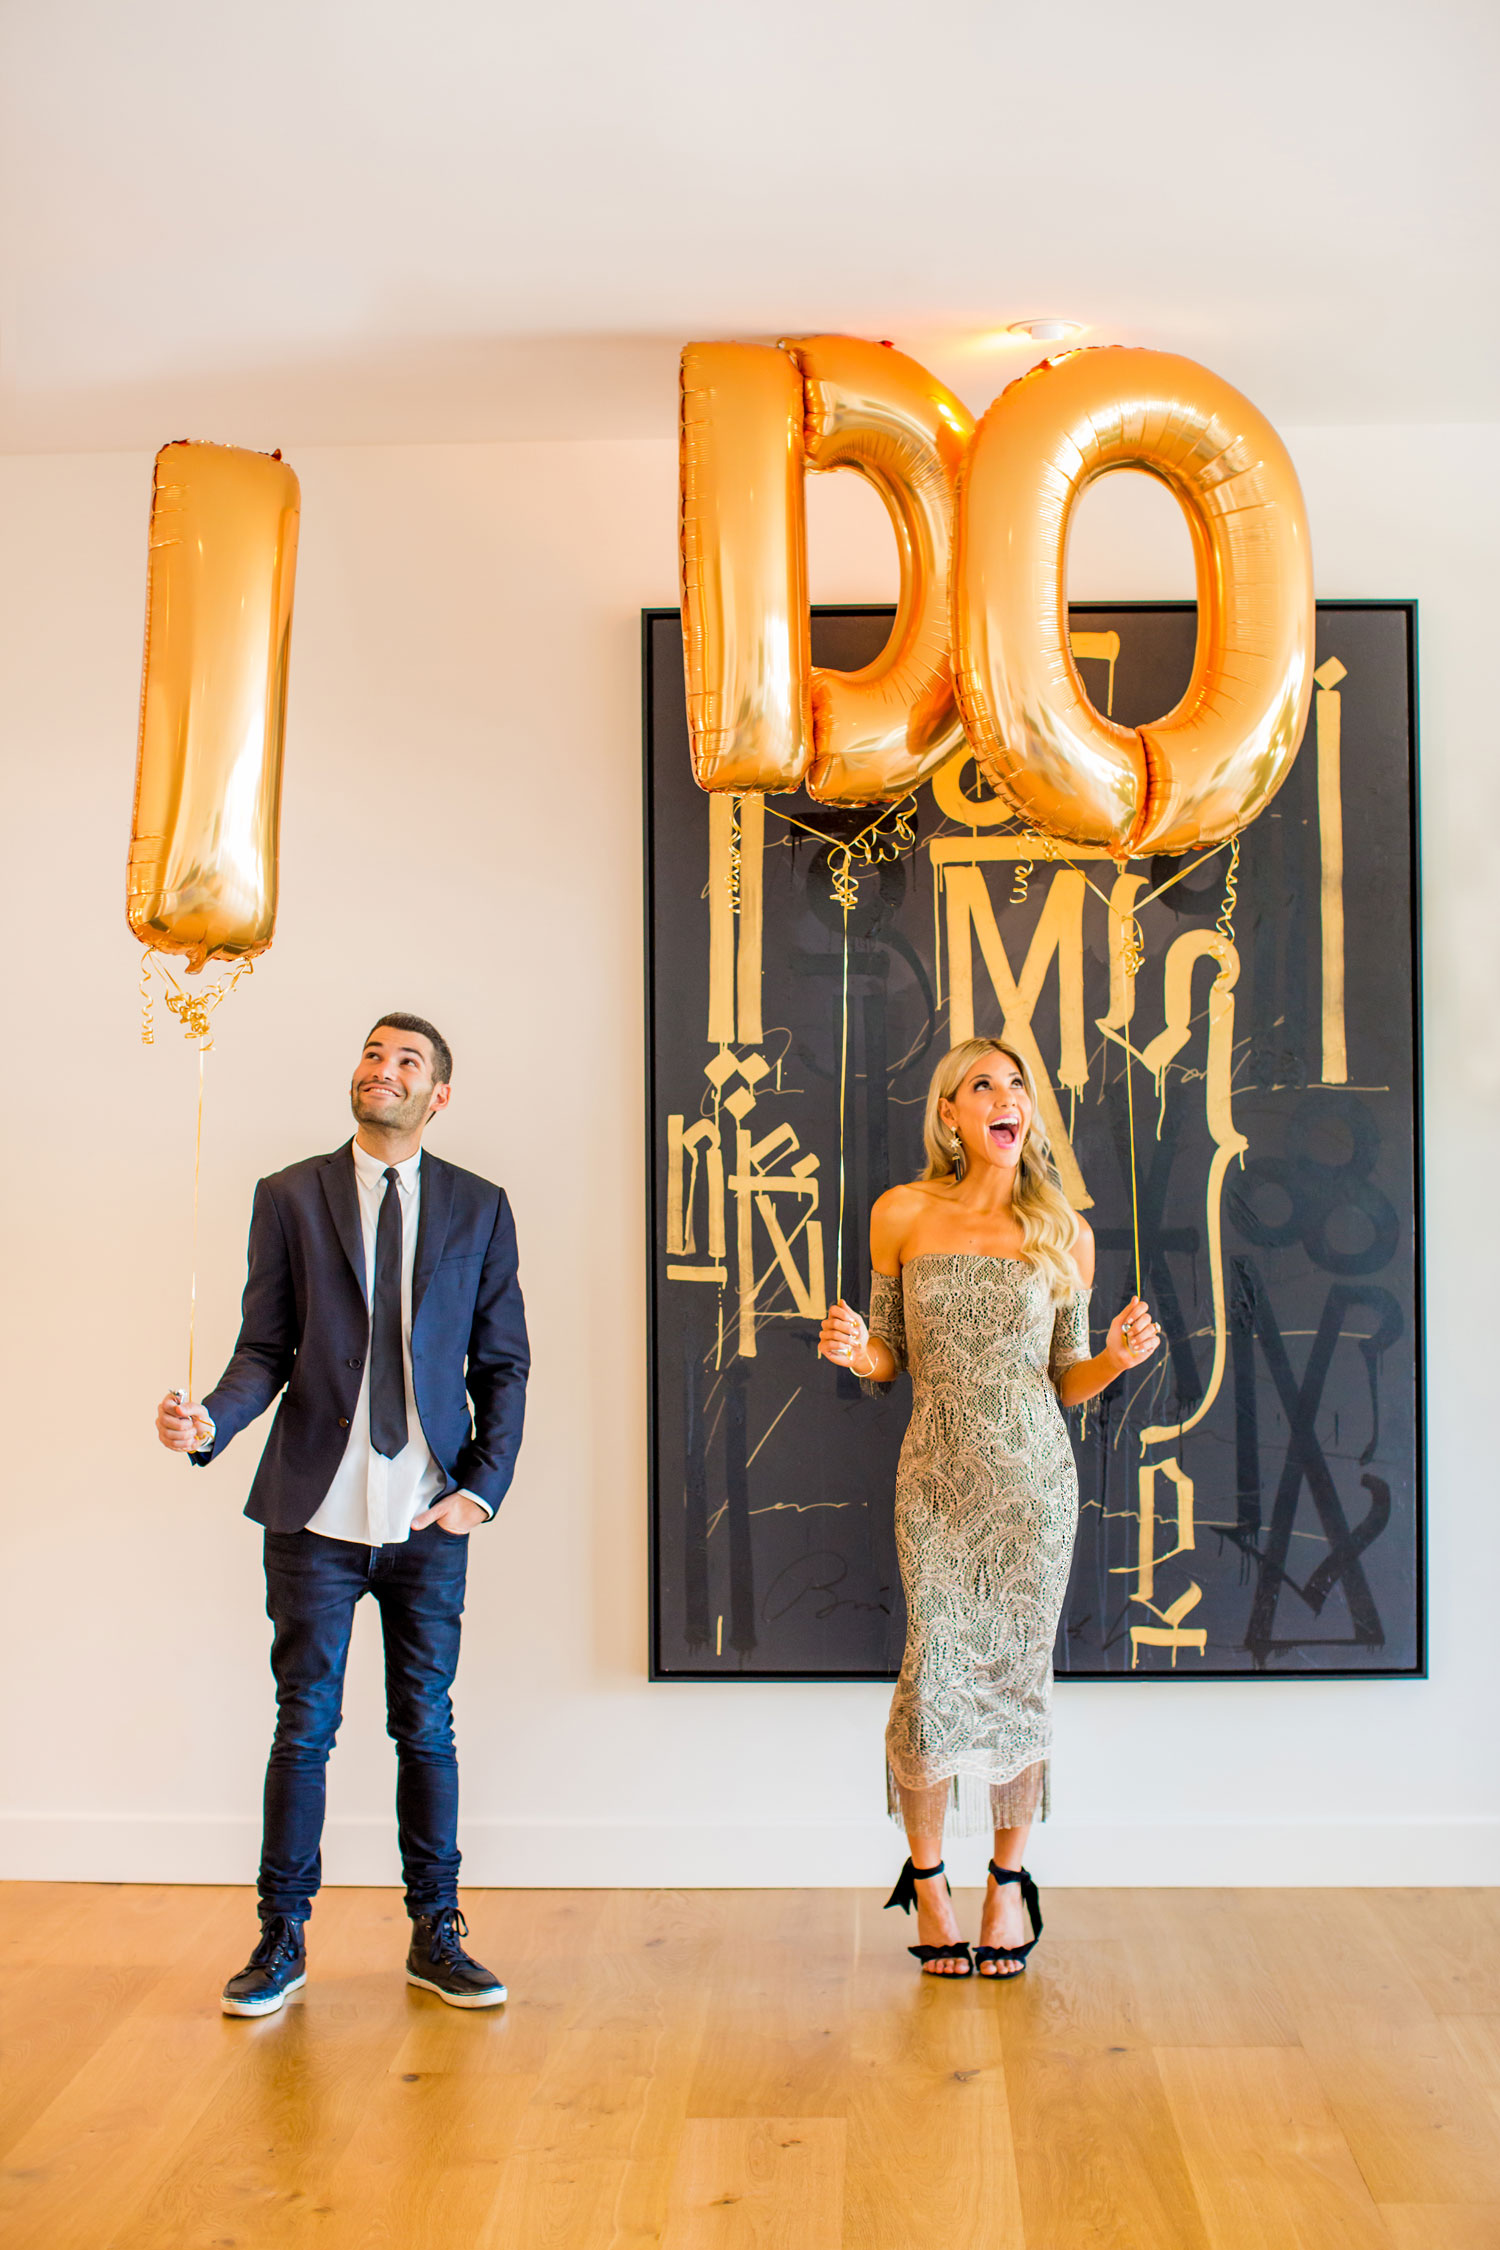 Bride and groom engaged surprise proposal with i do balloons gold